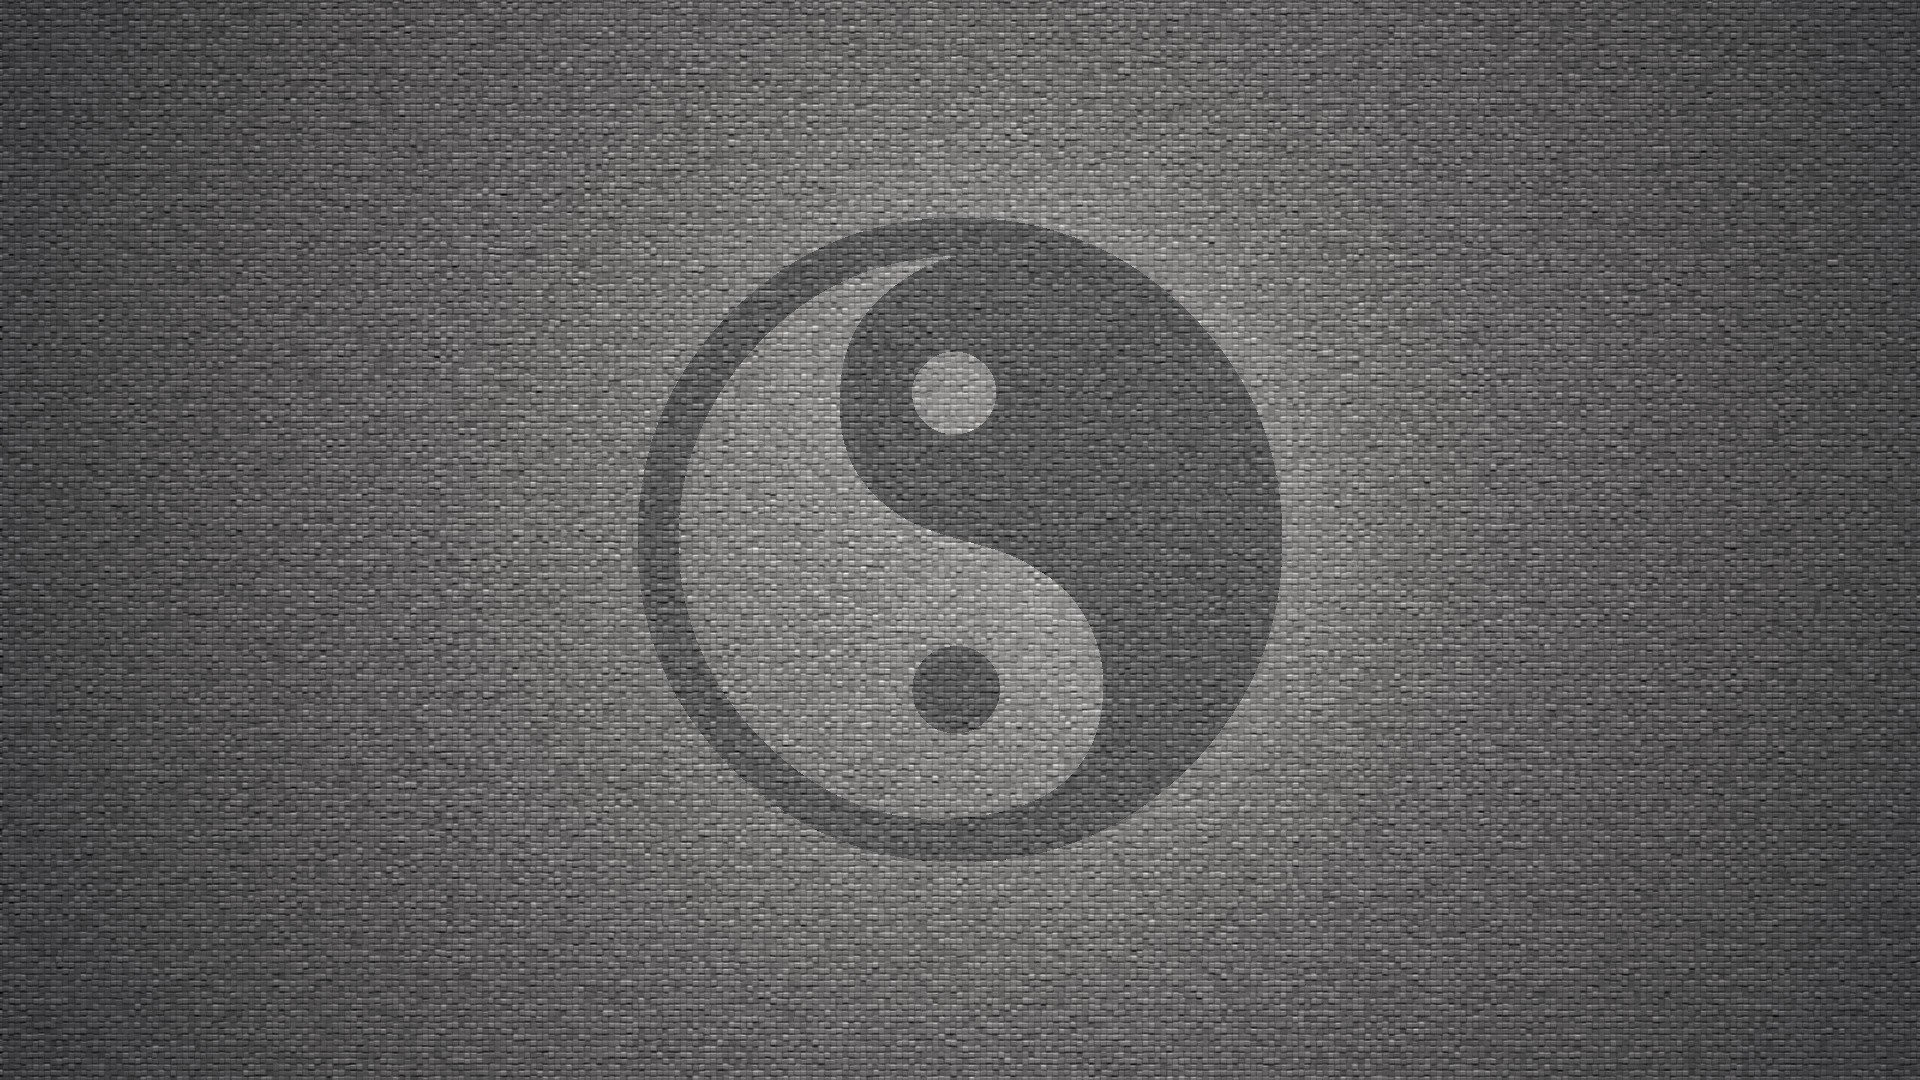 yin and yang wallpaper, ying yang wallpaper